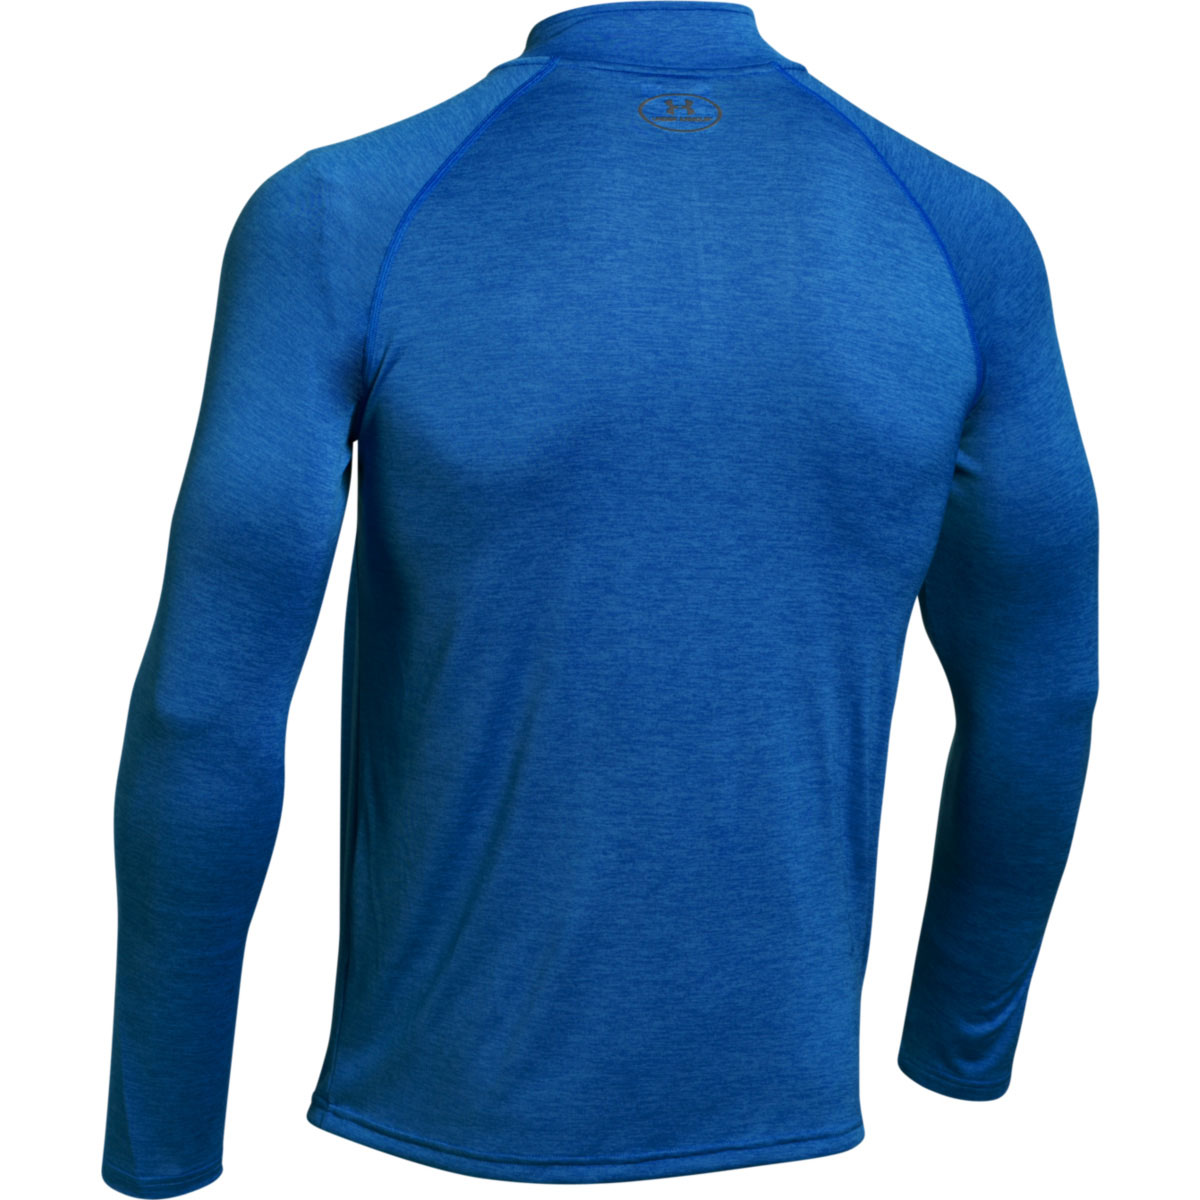 Under-Armour-Mens-UA-Tech-1-4-Zip-Long-Sleeve-Top-Workout-Layer-27-OFF-RRP thumbnail 95